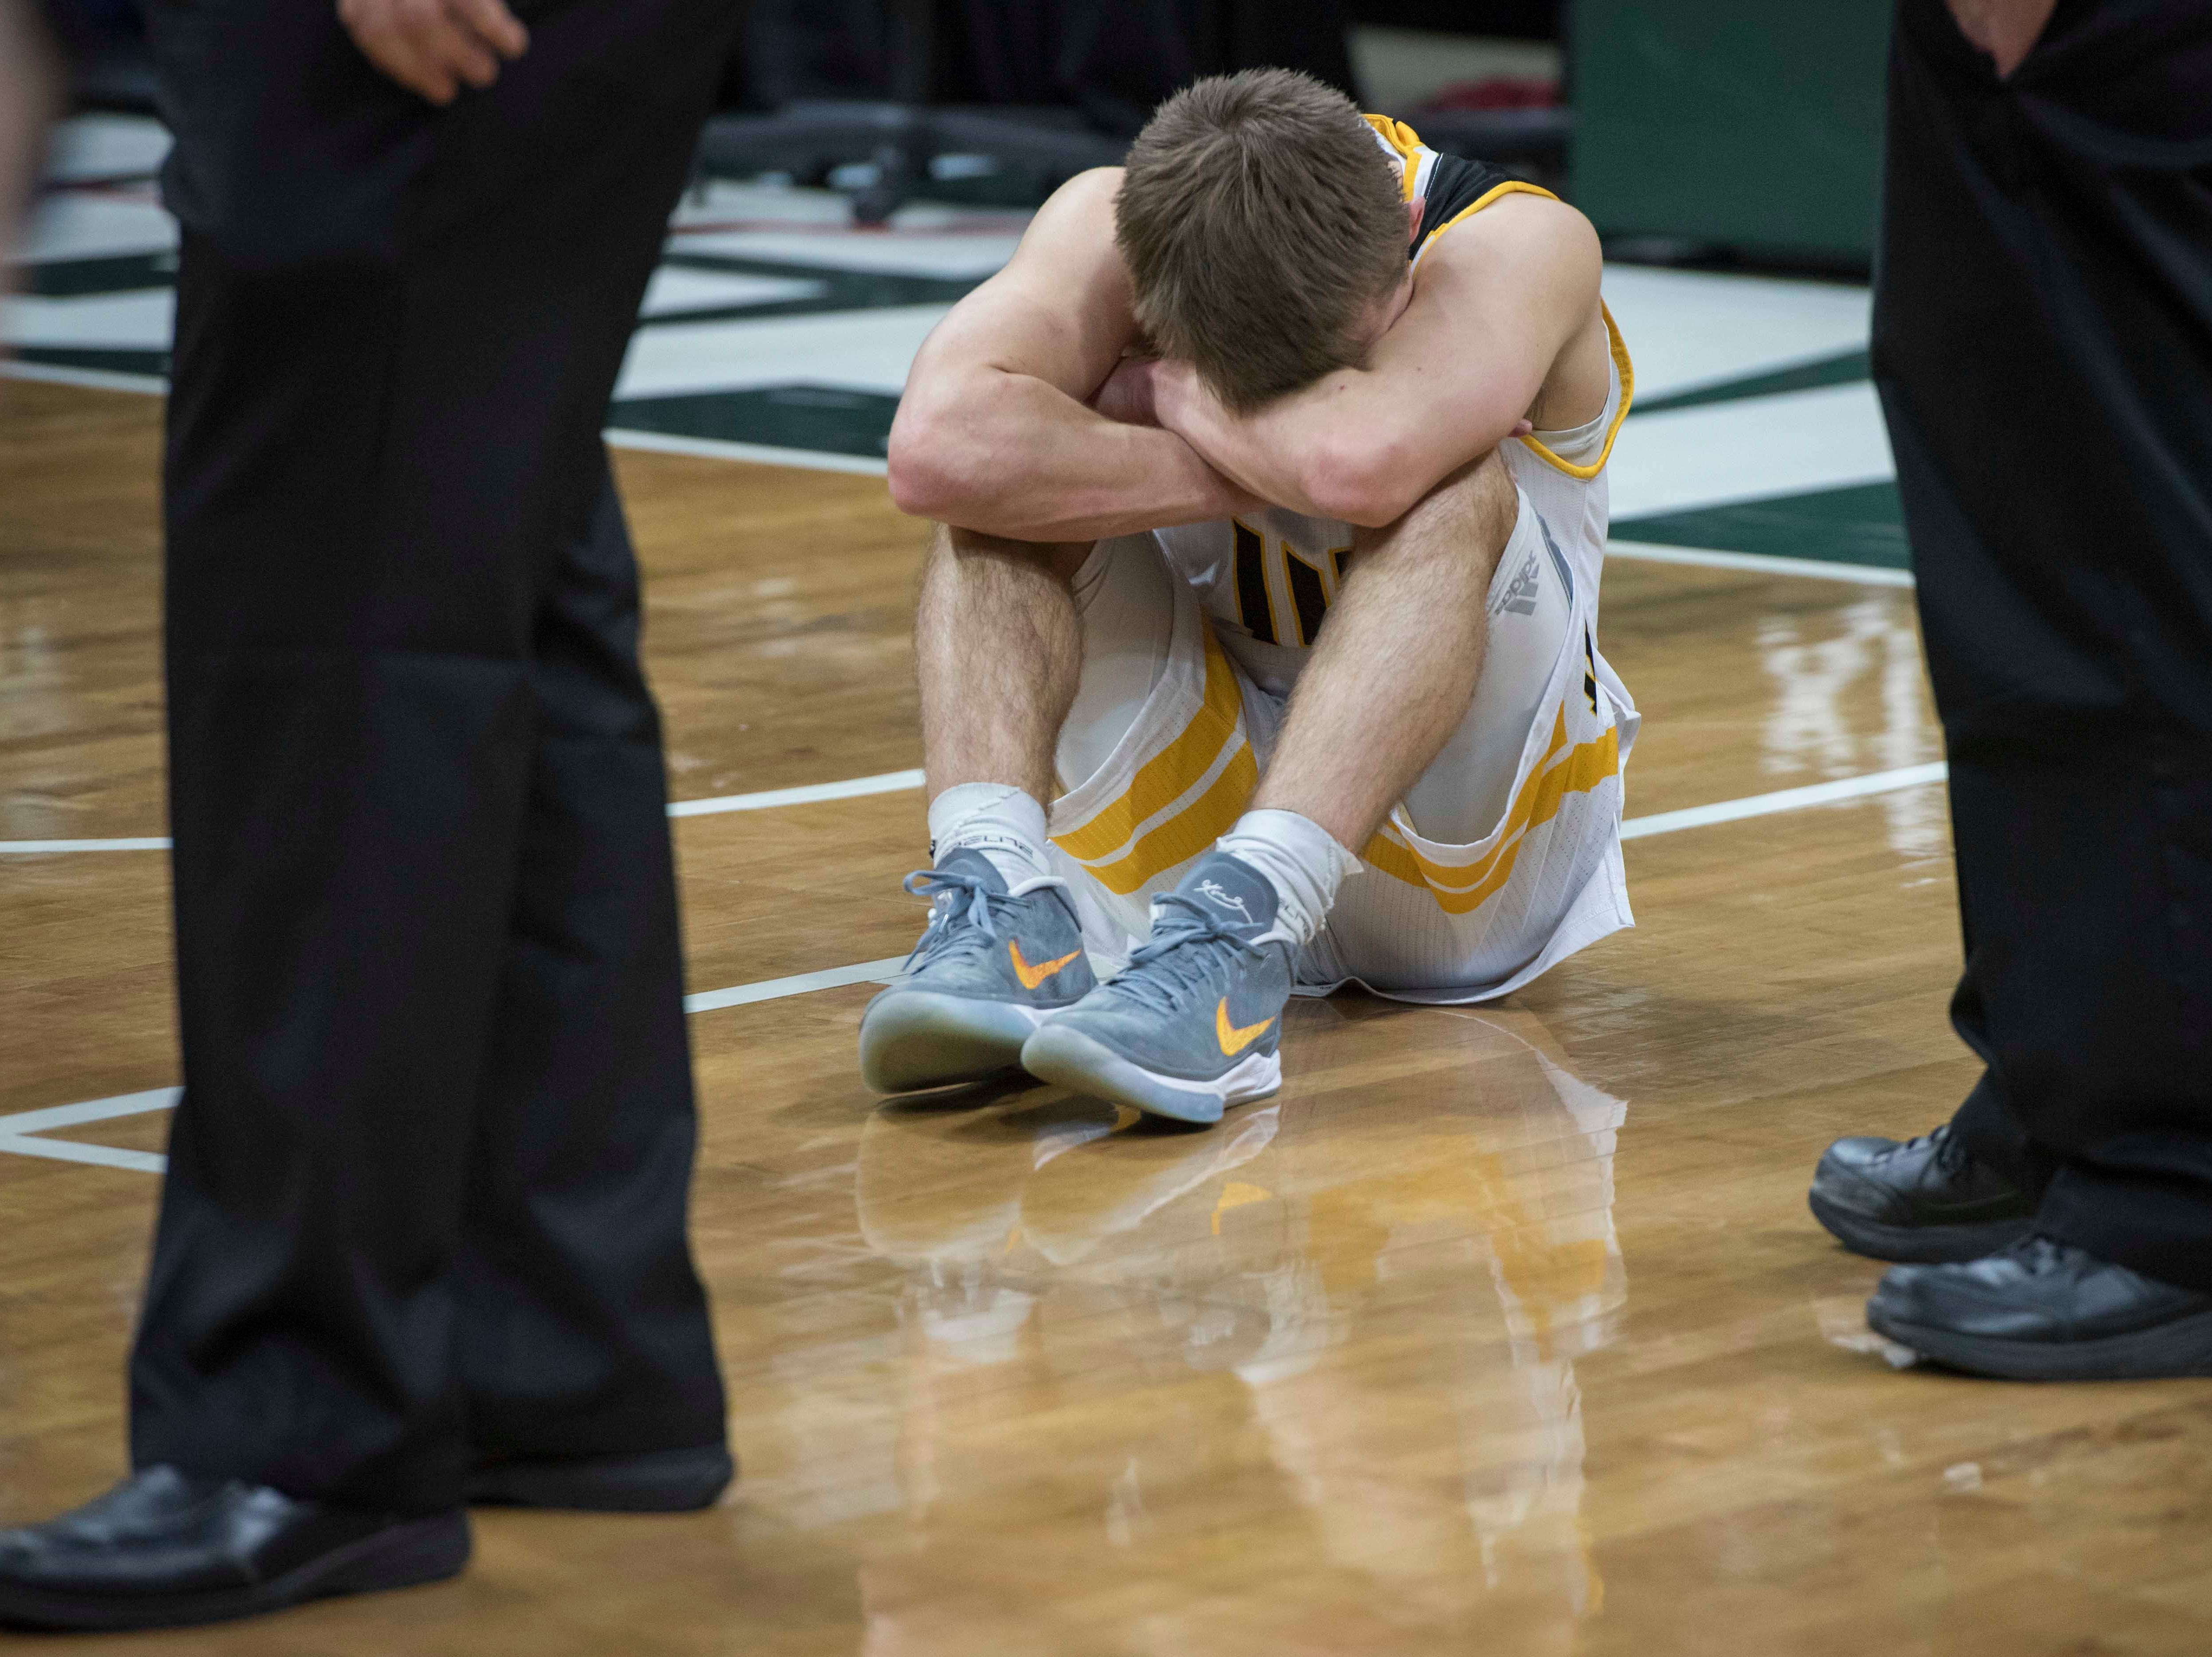 Iron Mountain's Marcus Johnson buries his head after his team lost the game.